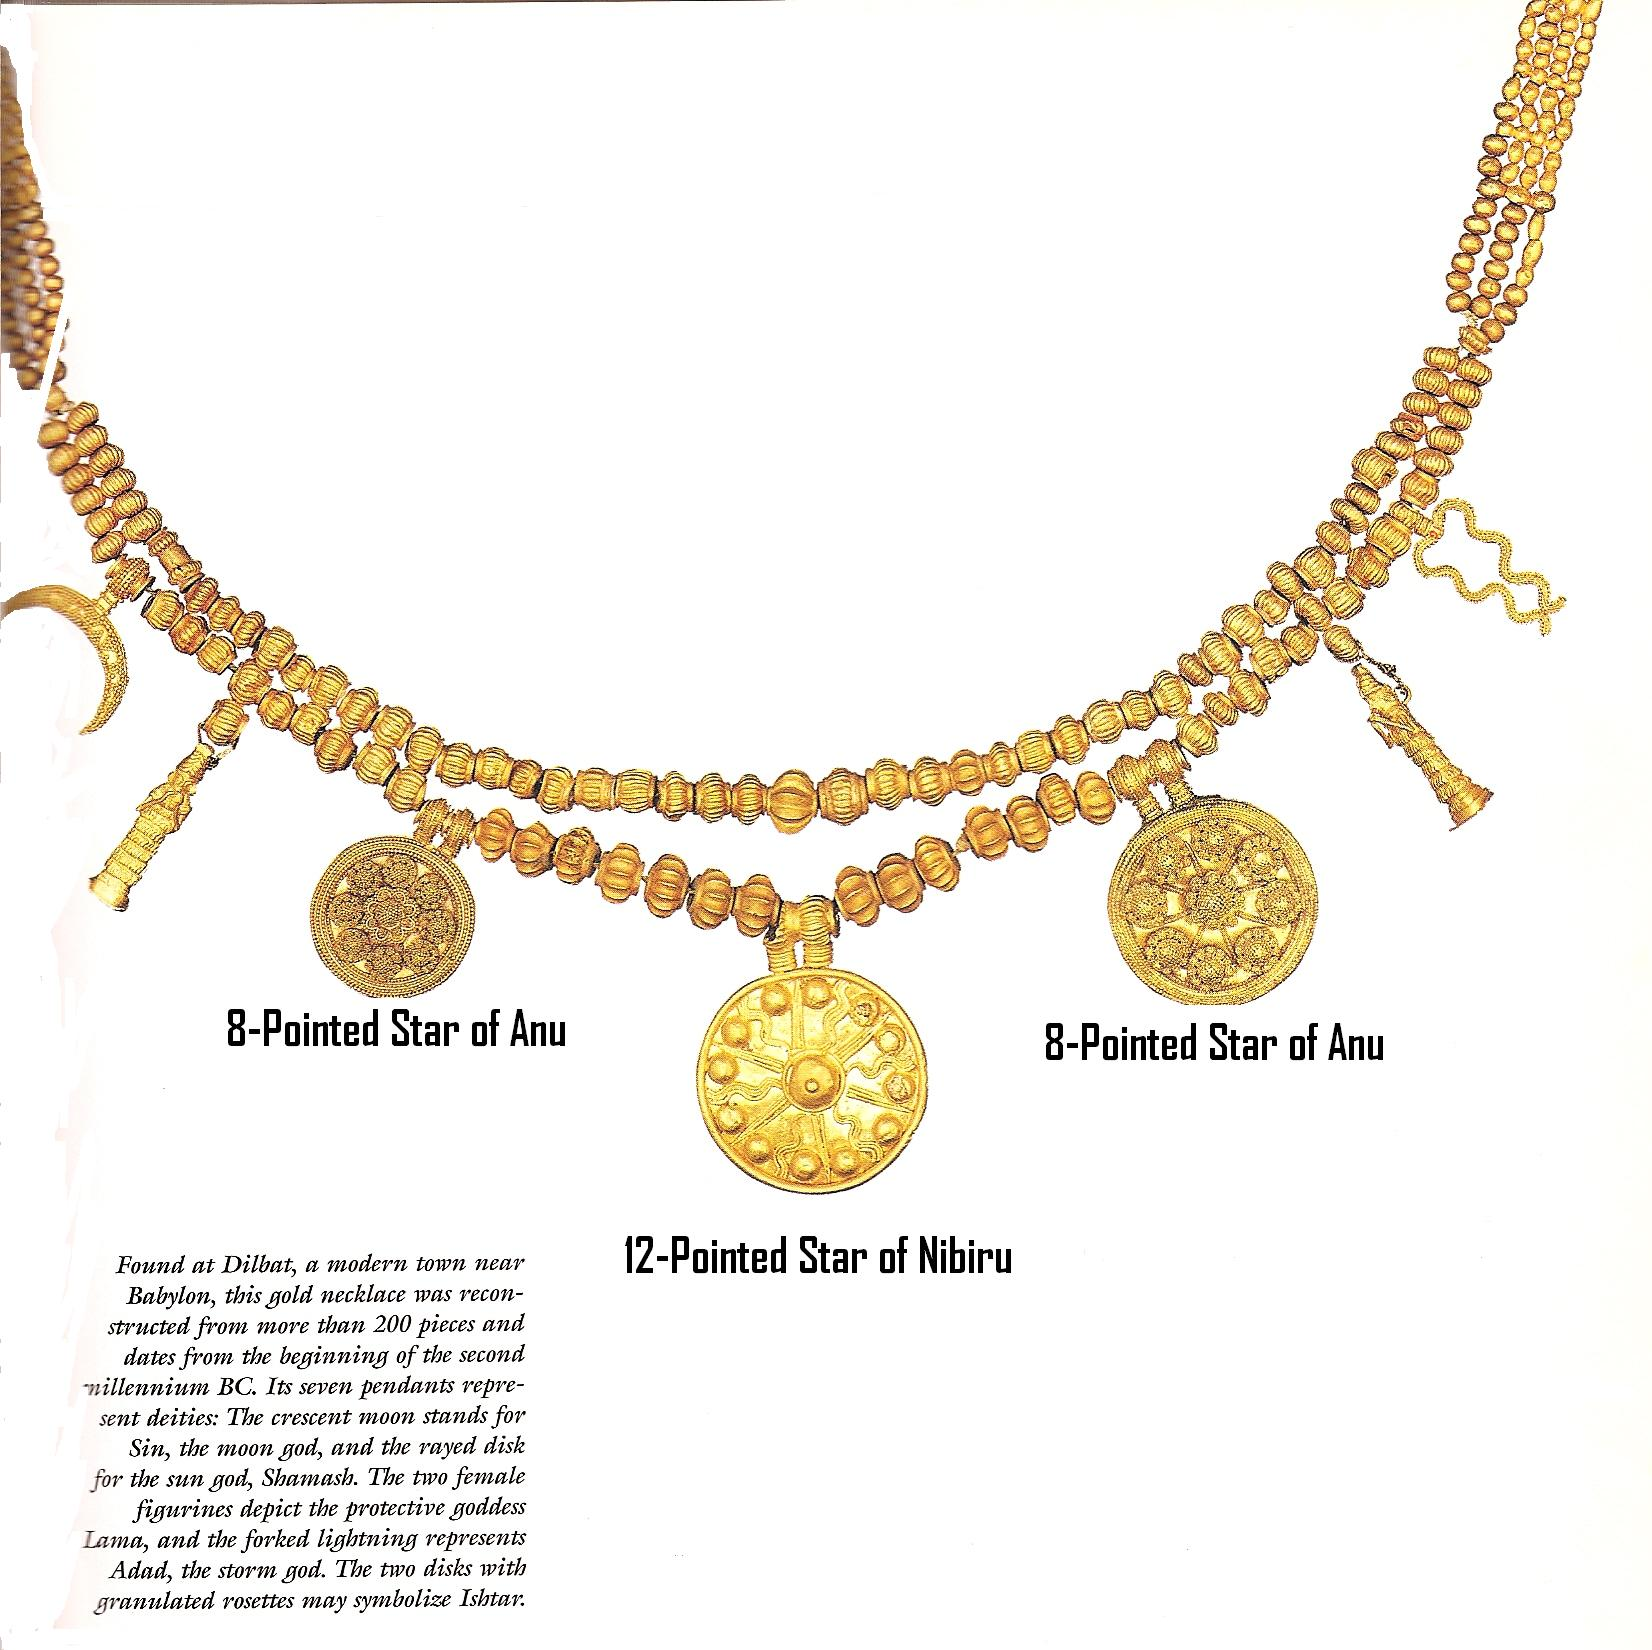 7d - Nannar's moon crescent & other symbols of gods, 2,000 B.C., Babylonian, 2 goddesses hang off the necklace